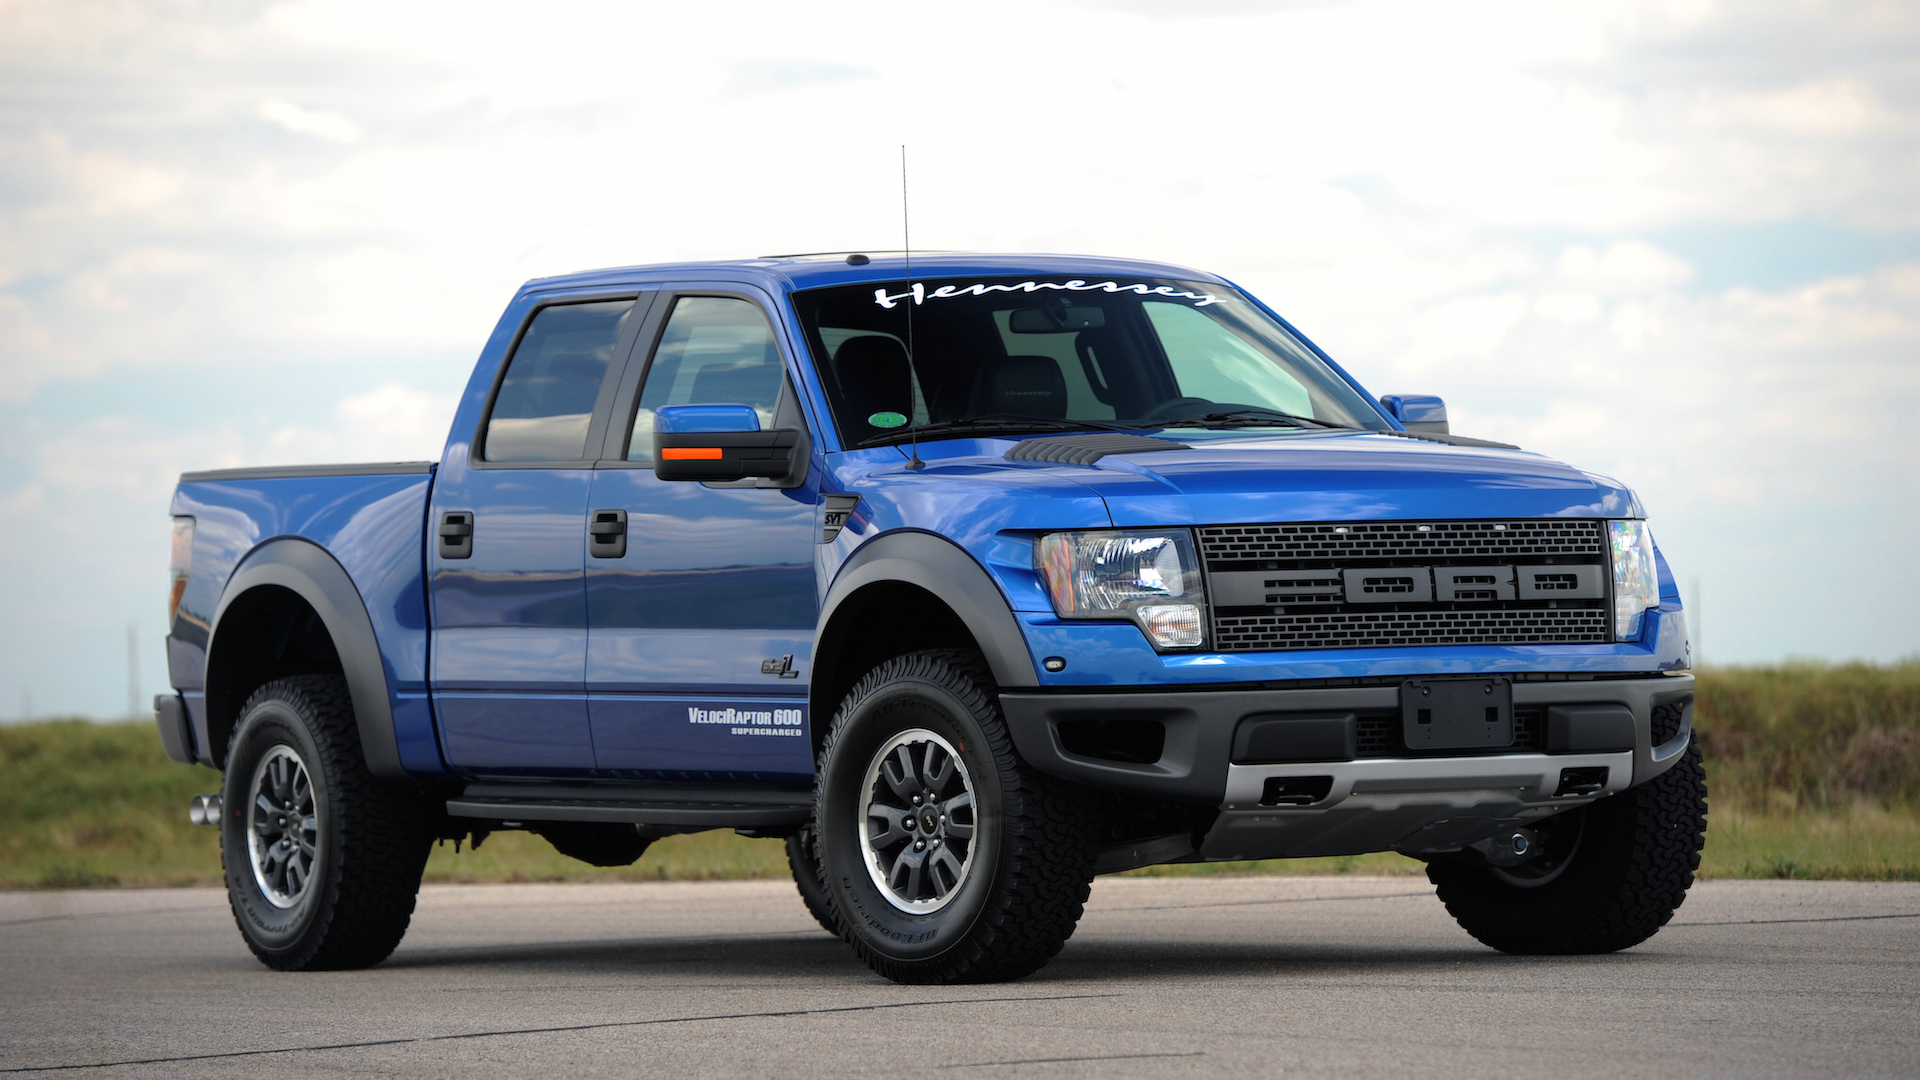 Hennessey VelociRaptor 600 and 800 based on Ford F-150 SVT Raptor 6.2